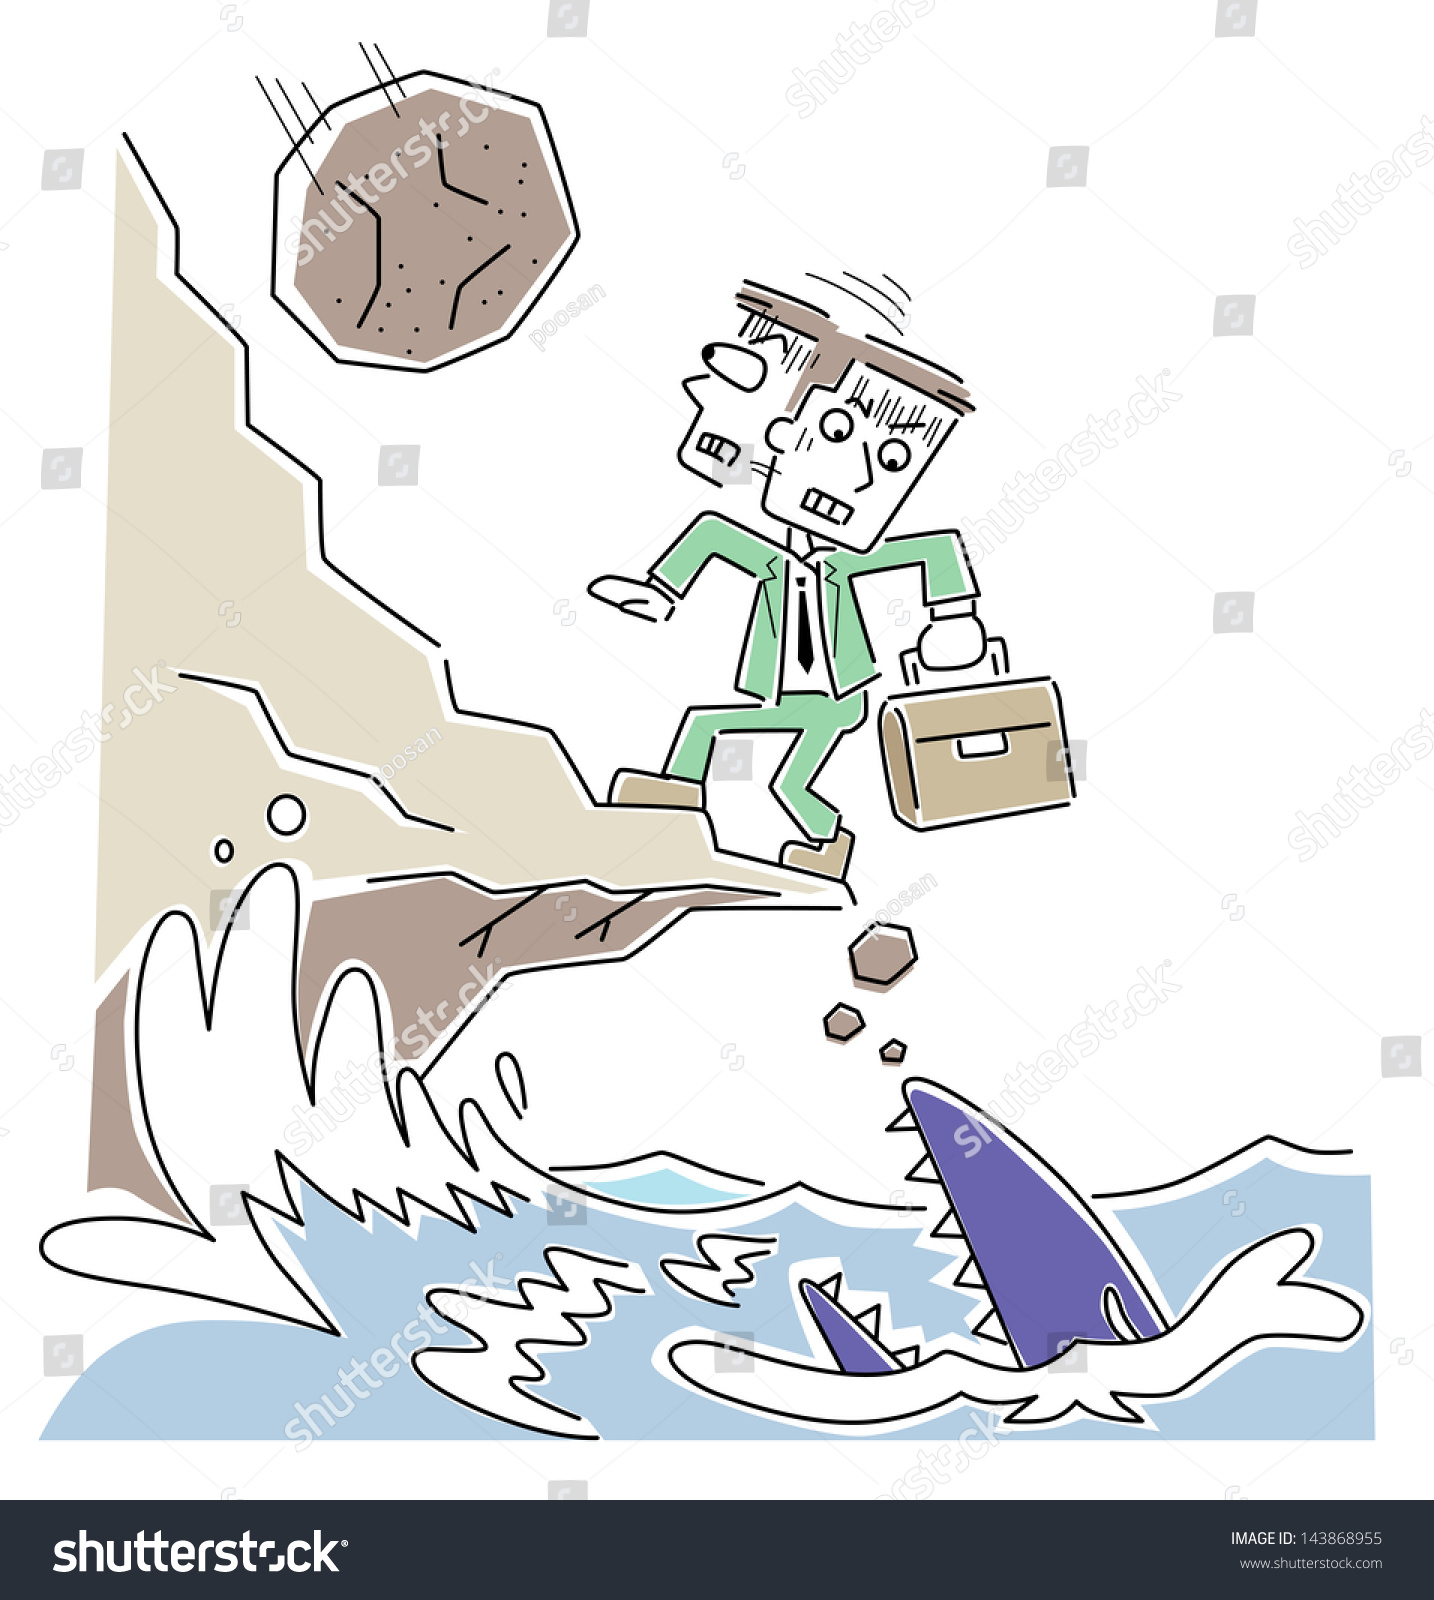 Businessmen Desperate Situation Stock Illustration 143868955 If you are desperate , you are in such a bad situation that you are willing to try. https www shutterstock com image illustration businessmen desperate situation 143868955